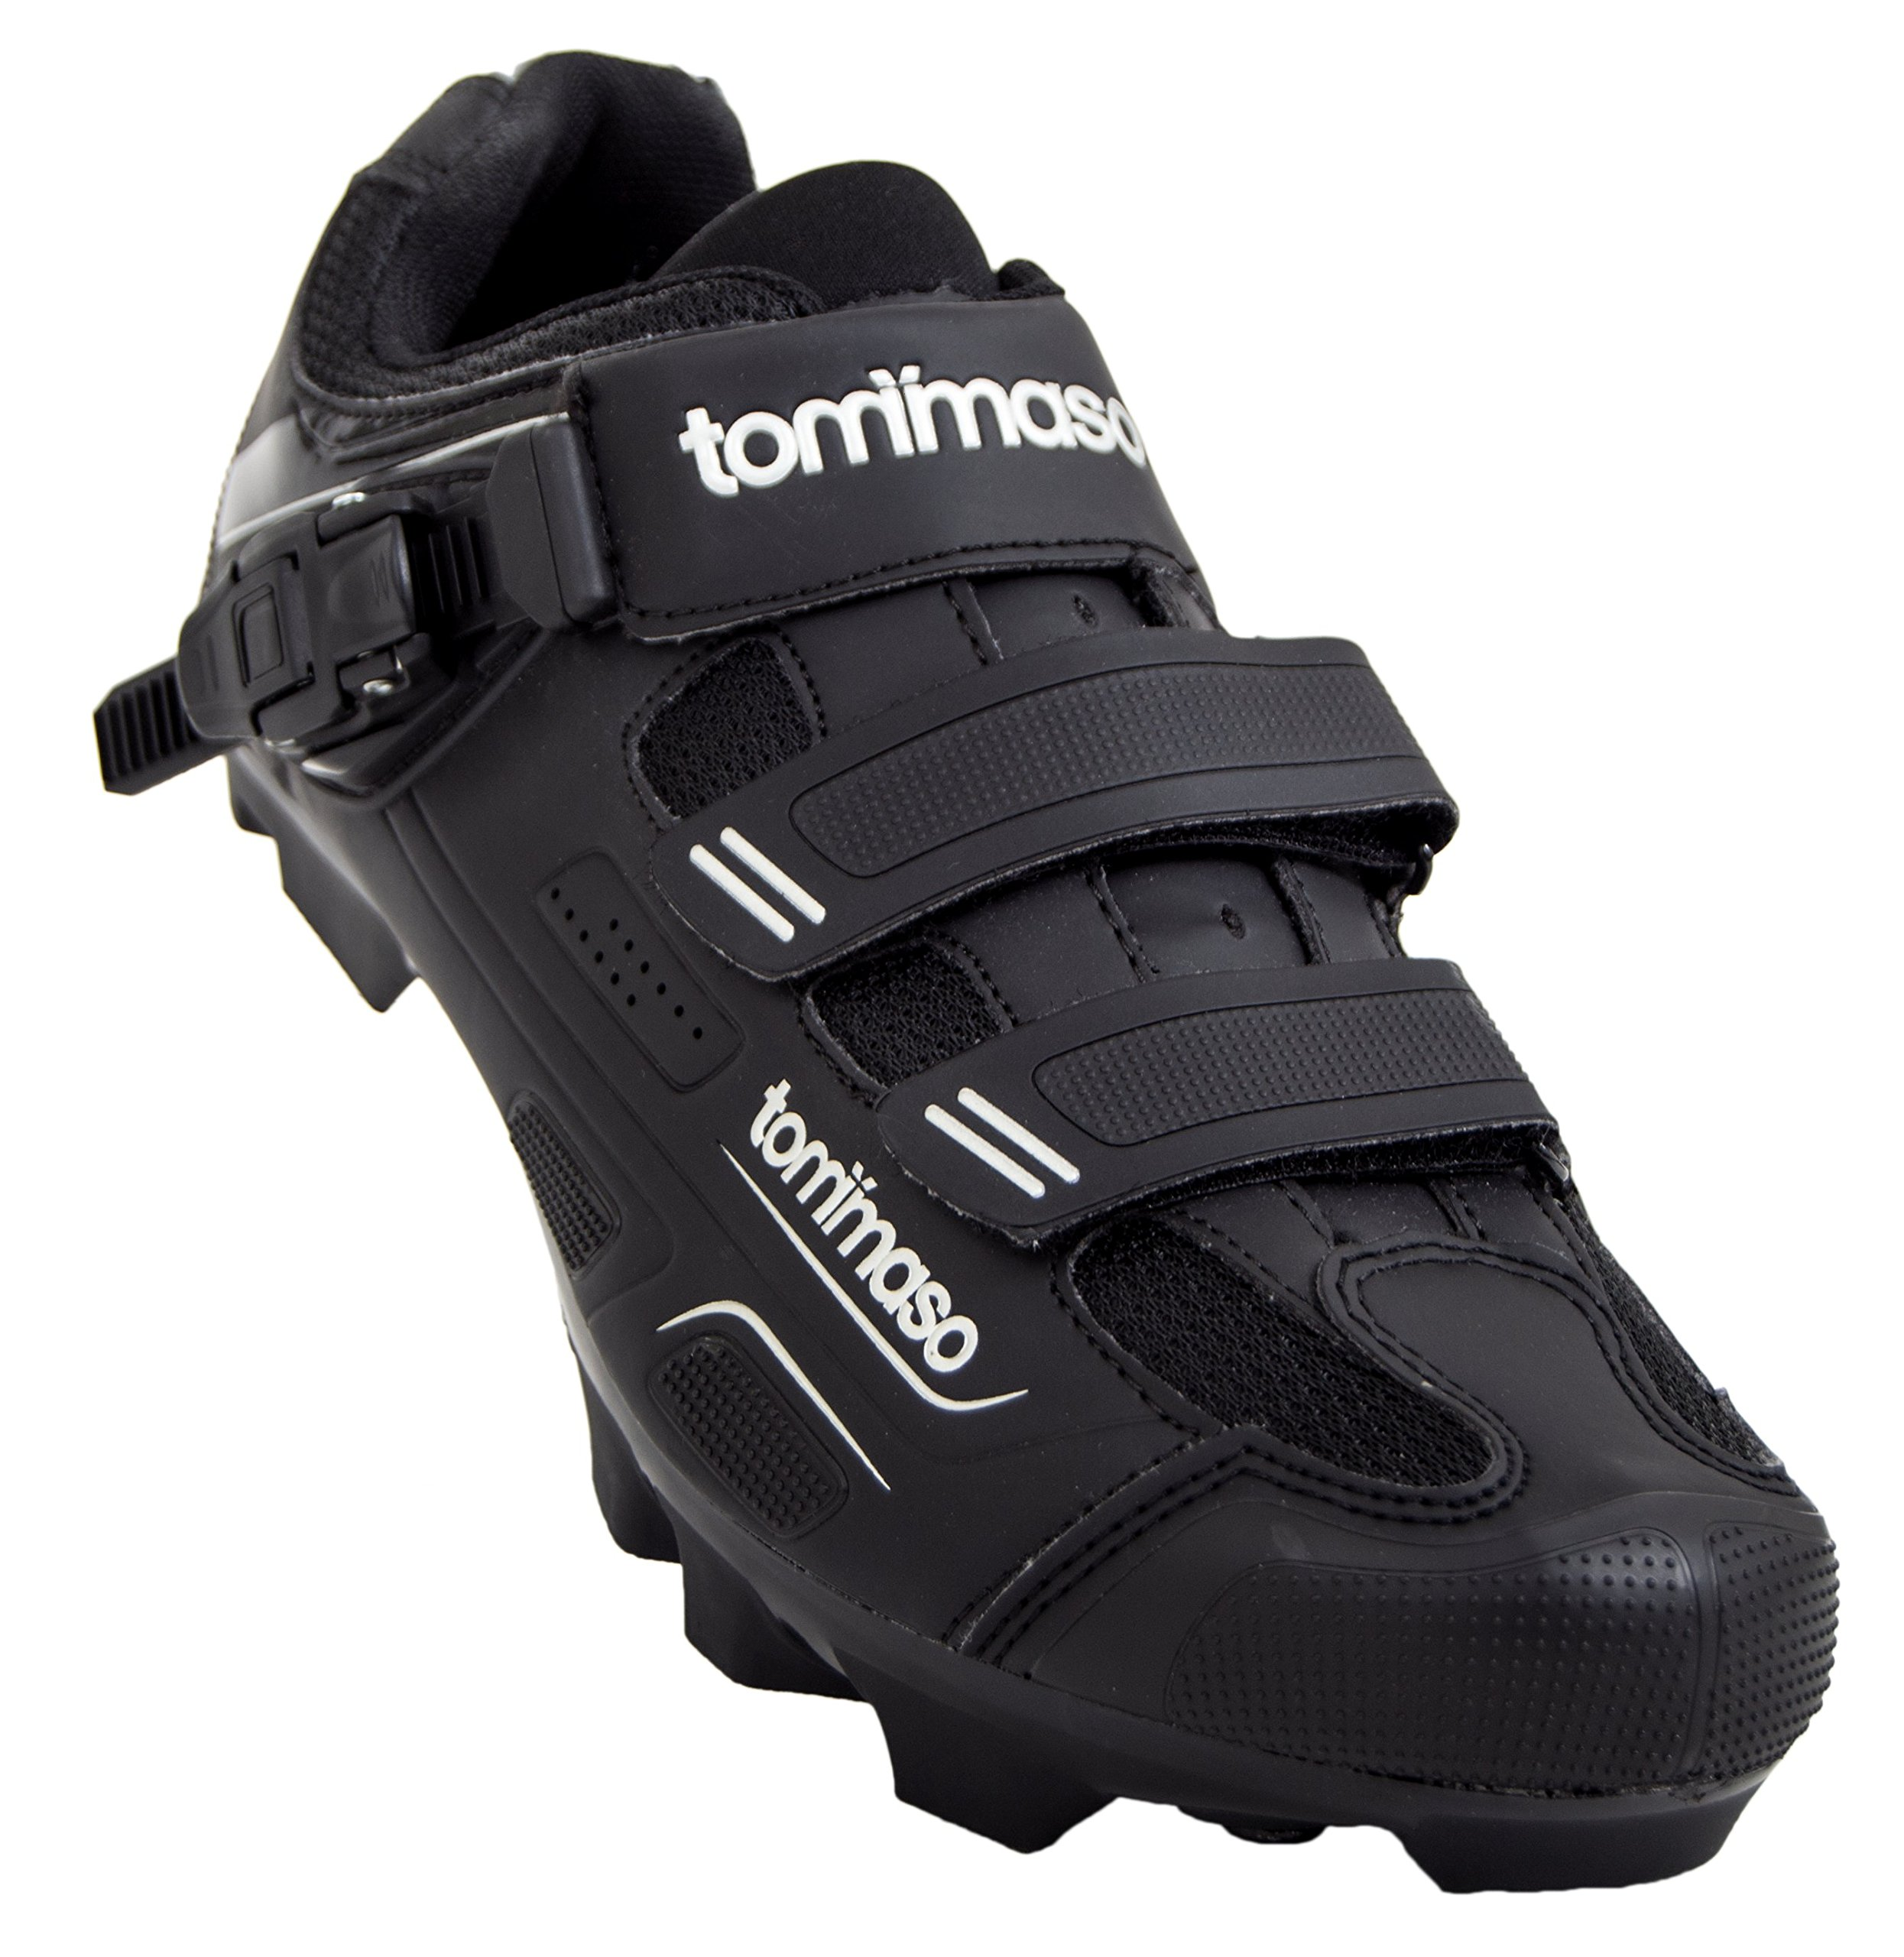 Tommaso Montagna 200 Mountain Bike Cycling Shoe with Buckle - 46